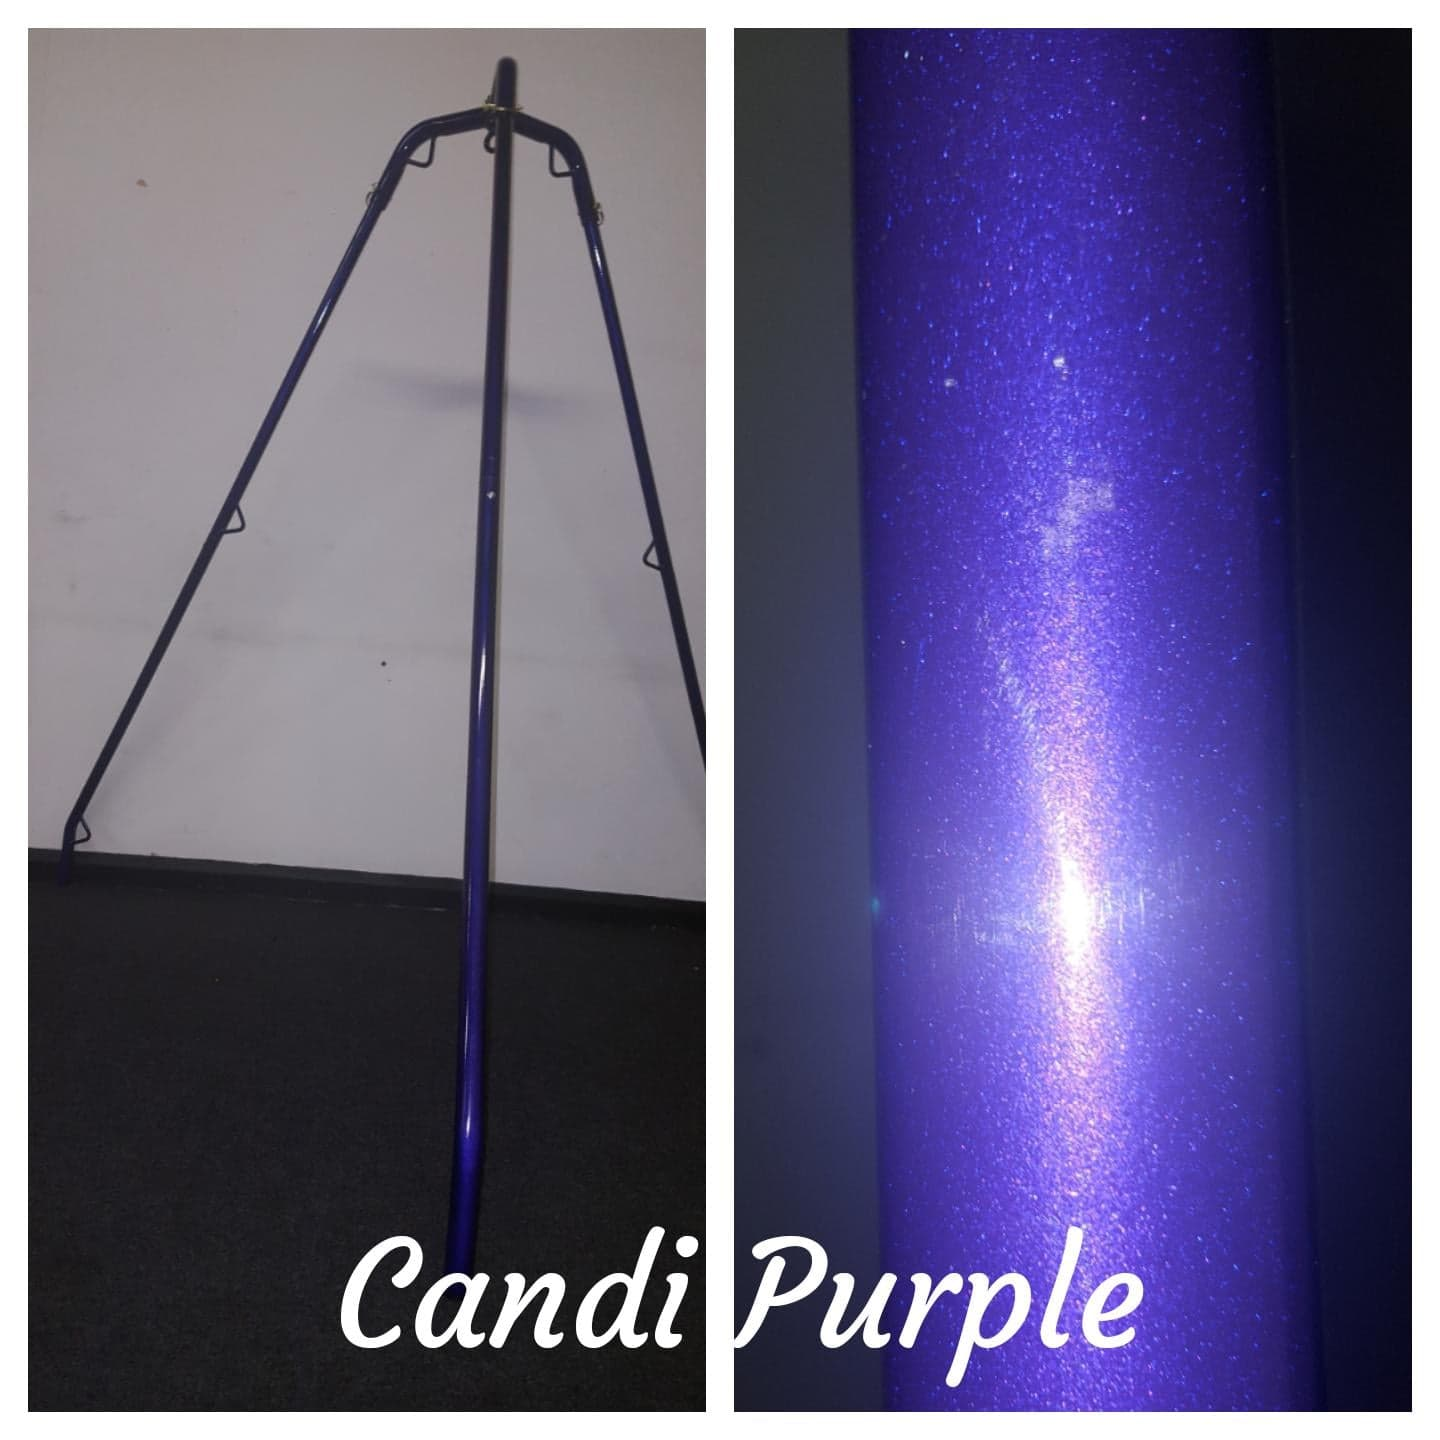 Candi Purple Triood Rope Frame